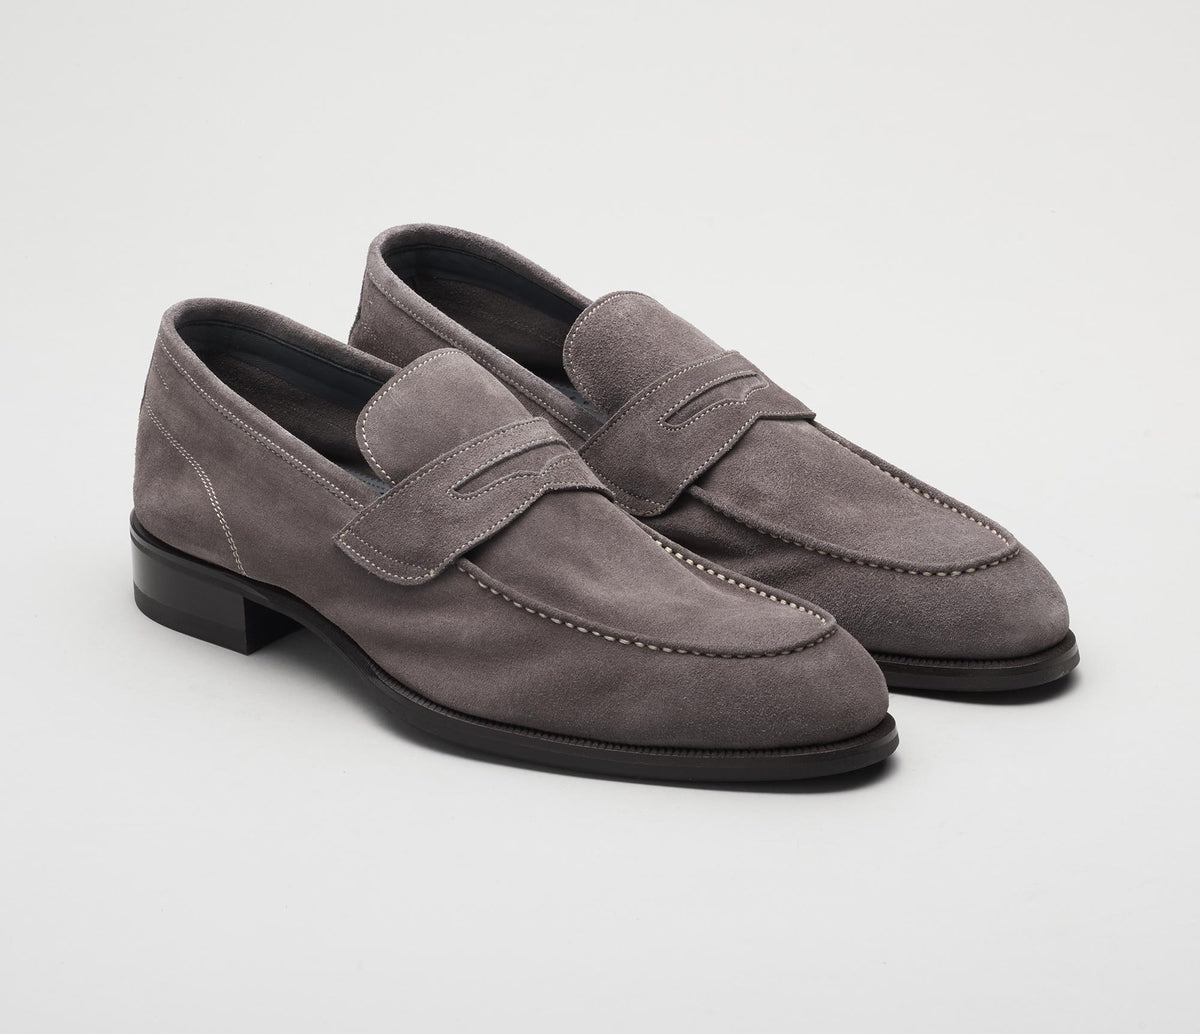 Men's loafer grey suede, made in italy, handmade